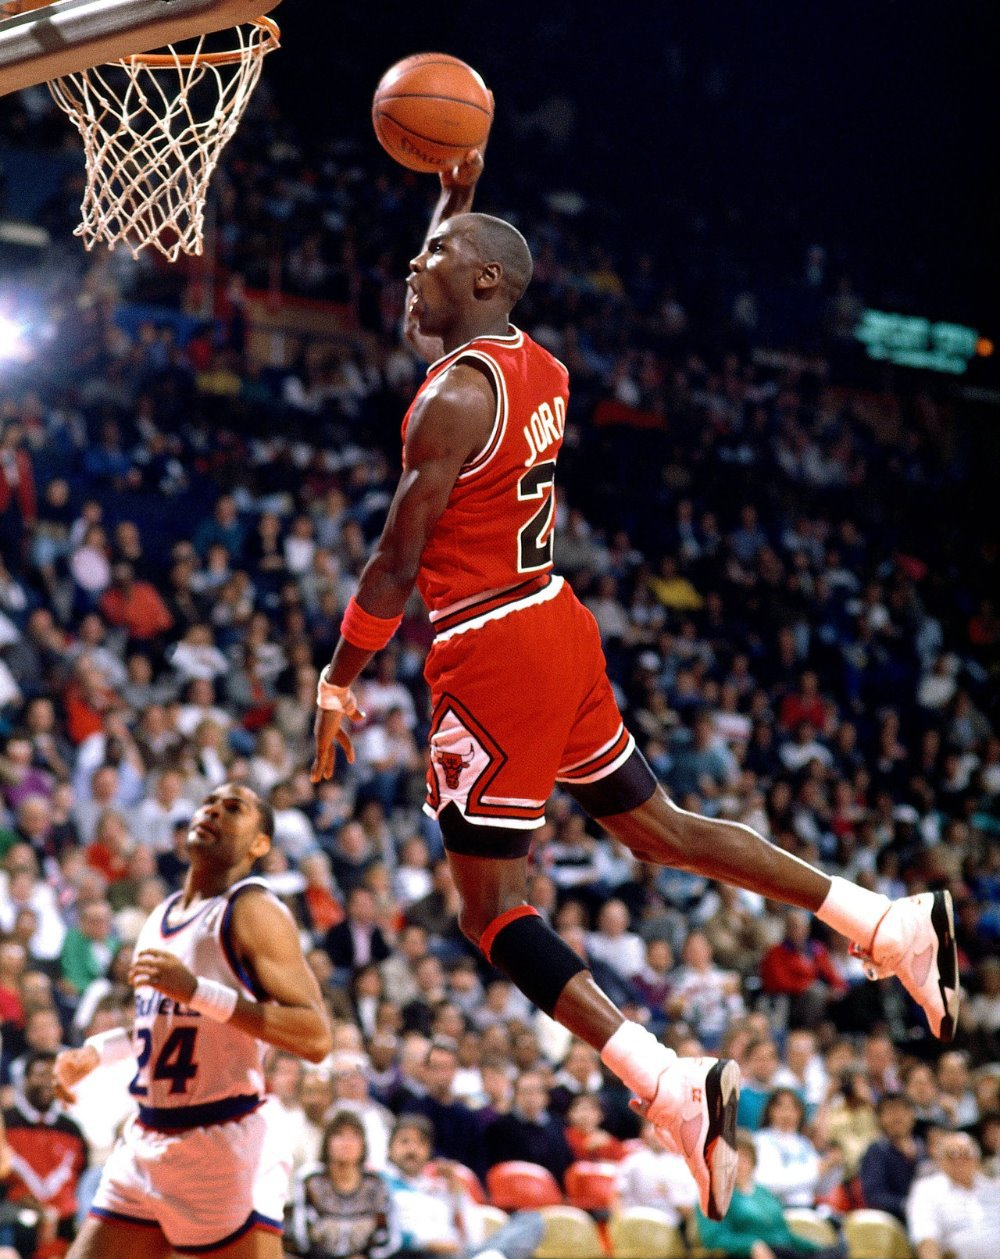 F1031 16 inch x20 inch Michael Jordan Chicago Flying Dunk Free throw Line Posters Canvas College Dorm Decor(China (Mainland))